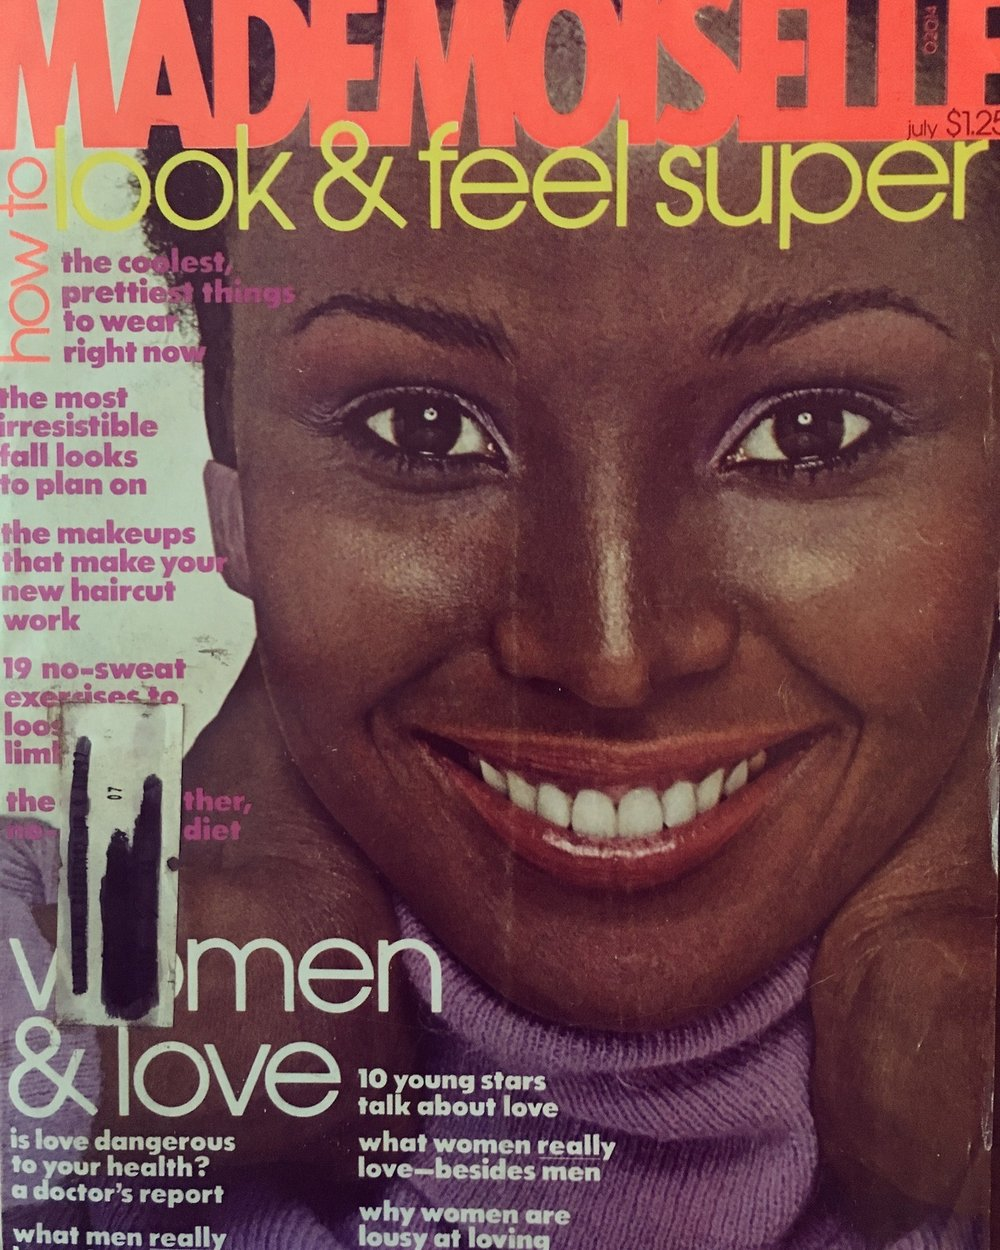 Mademoiselle cover. July 1976   One recent request was to post more black models here, particularly from the   '50s and   '60s, but honestly, that era is quite a bit dry when it comes to diversity. For the most part, fashion magazines were  very  segregated before the mid '60s. In the '70s the doors started opening more from mainstream publications, but even now, there is not as much diversity as one would think. We can do a lot better.